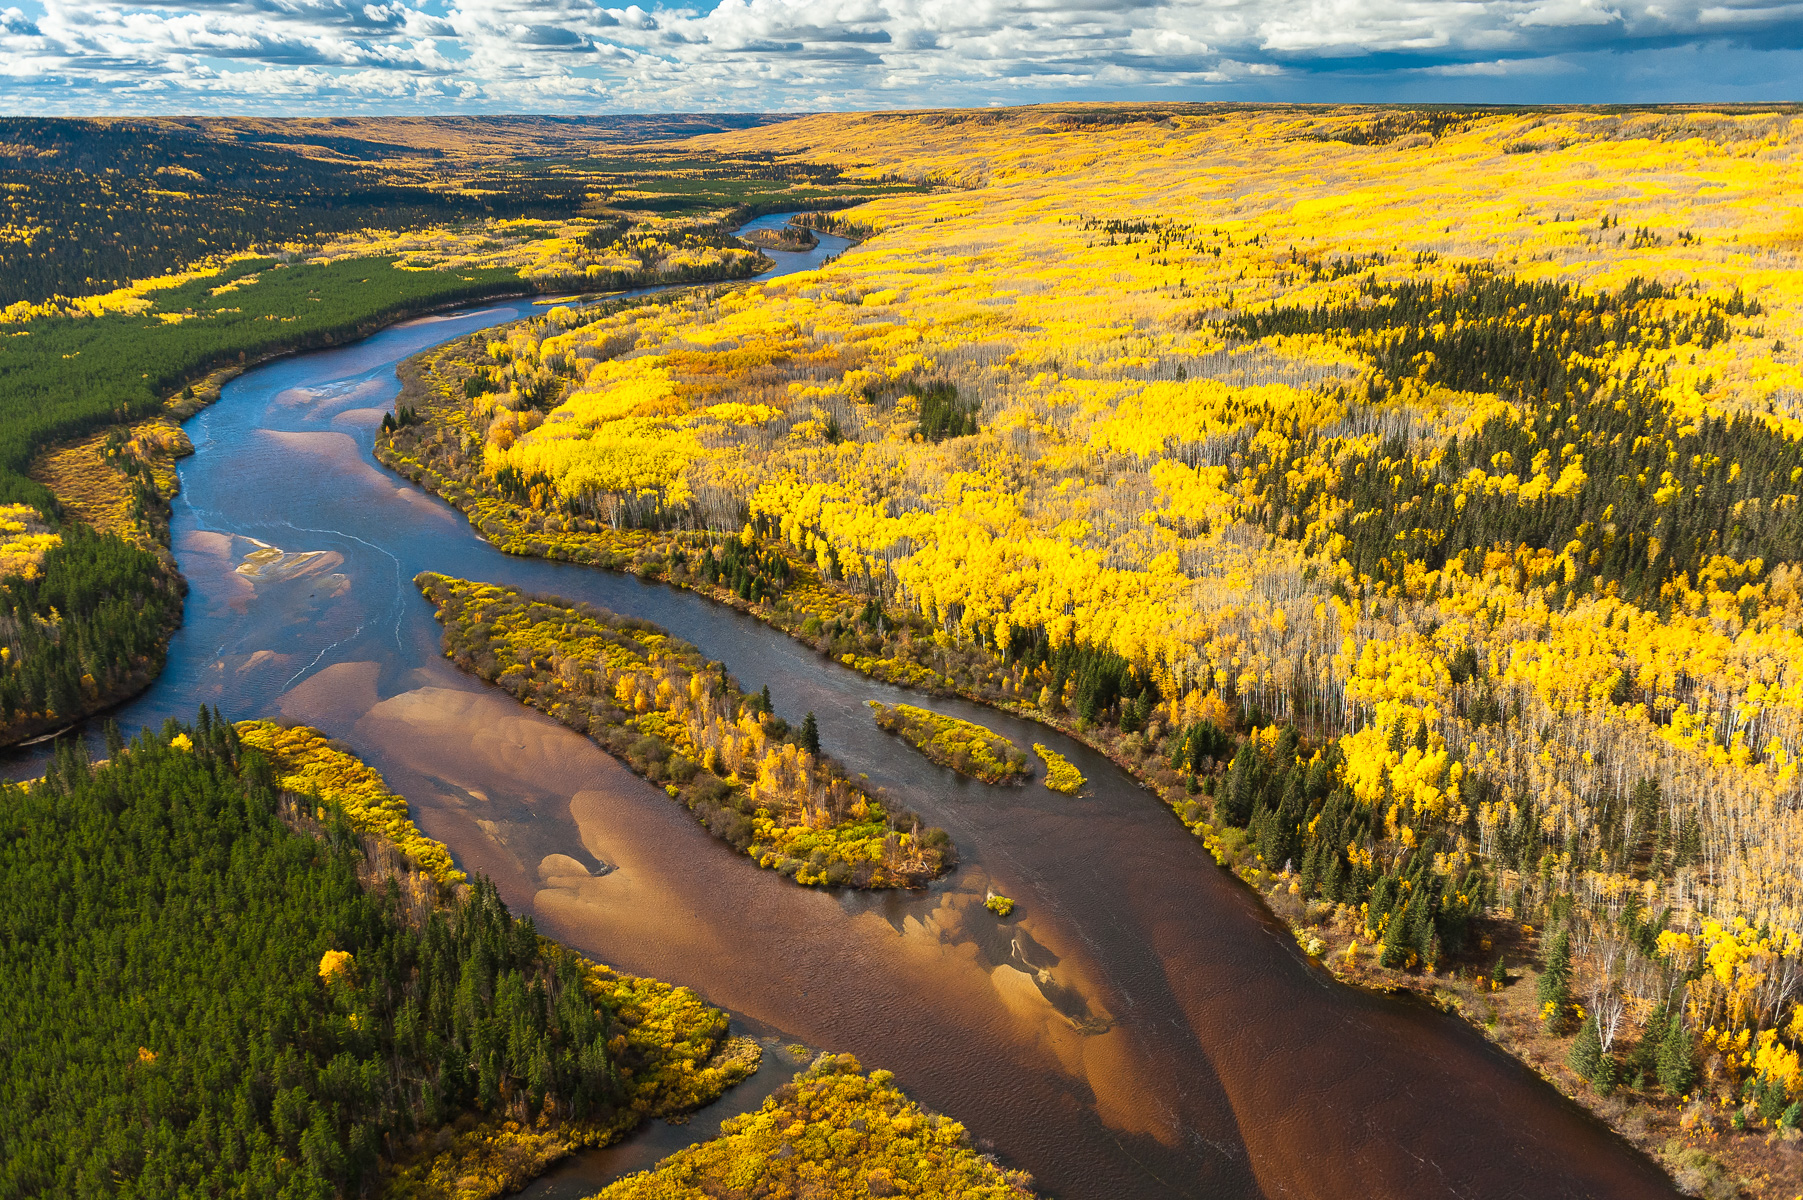 Located just east of Fort McMurray, Alberta, the Clearwater joins the Athabasca River as it winds its way north through the Tar Sands, accumulating toxic waste from the vast, unlined and leaching tailings ponds which border it on either side.